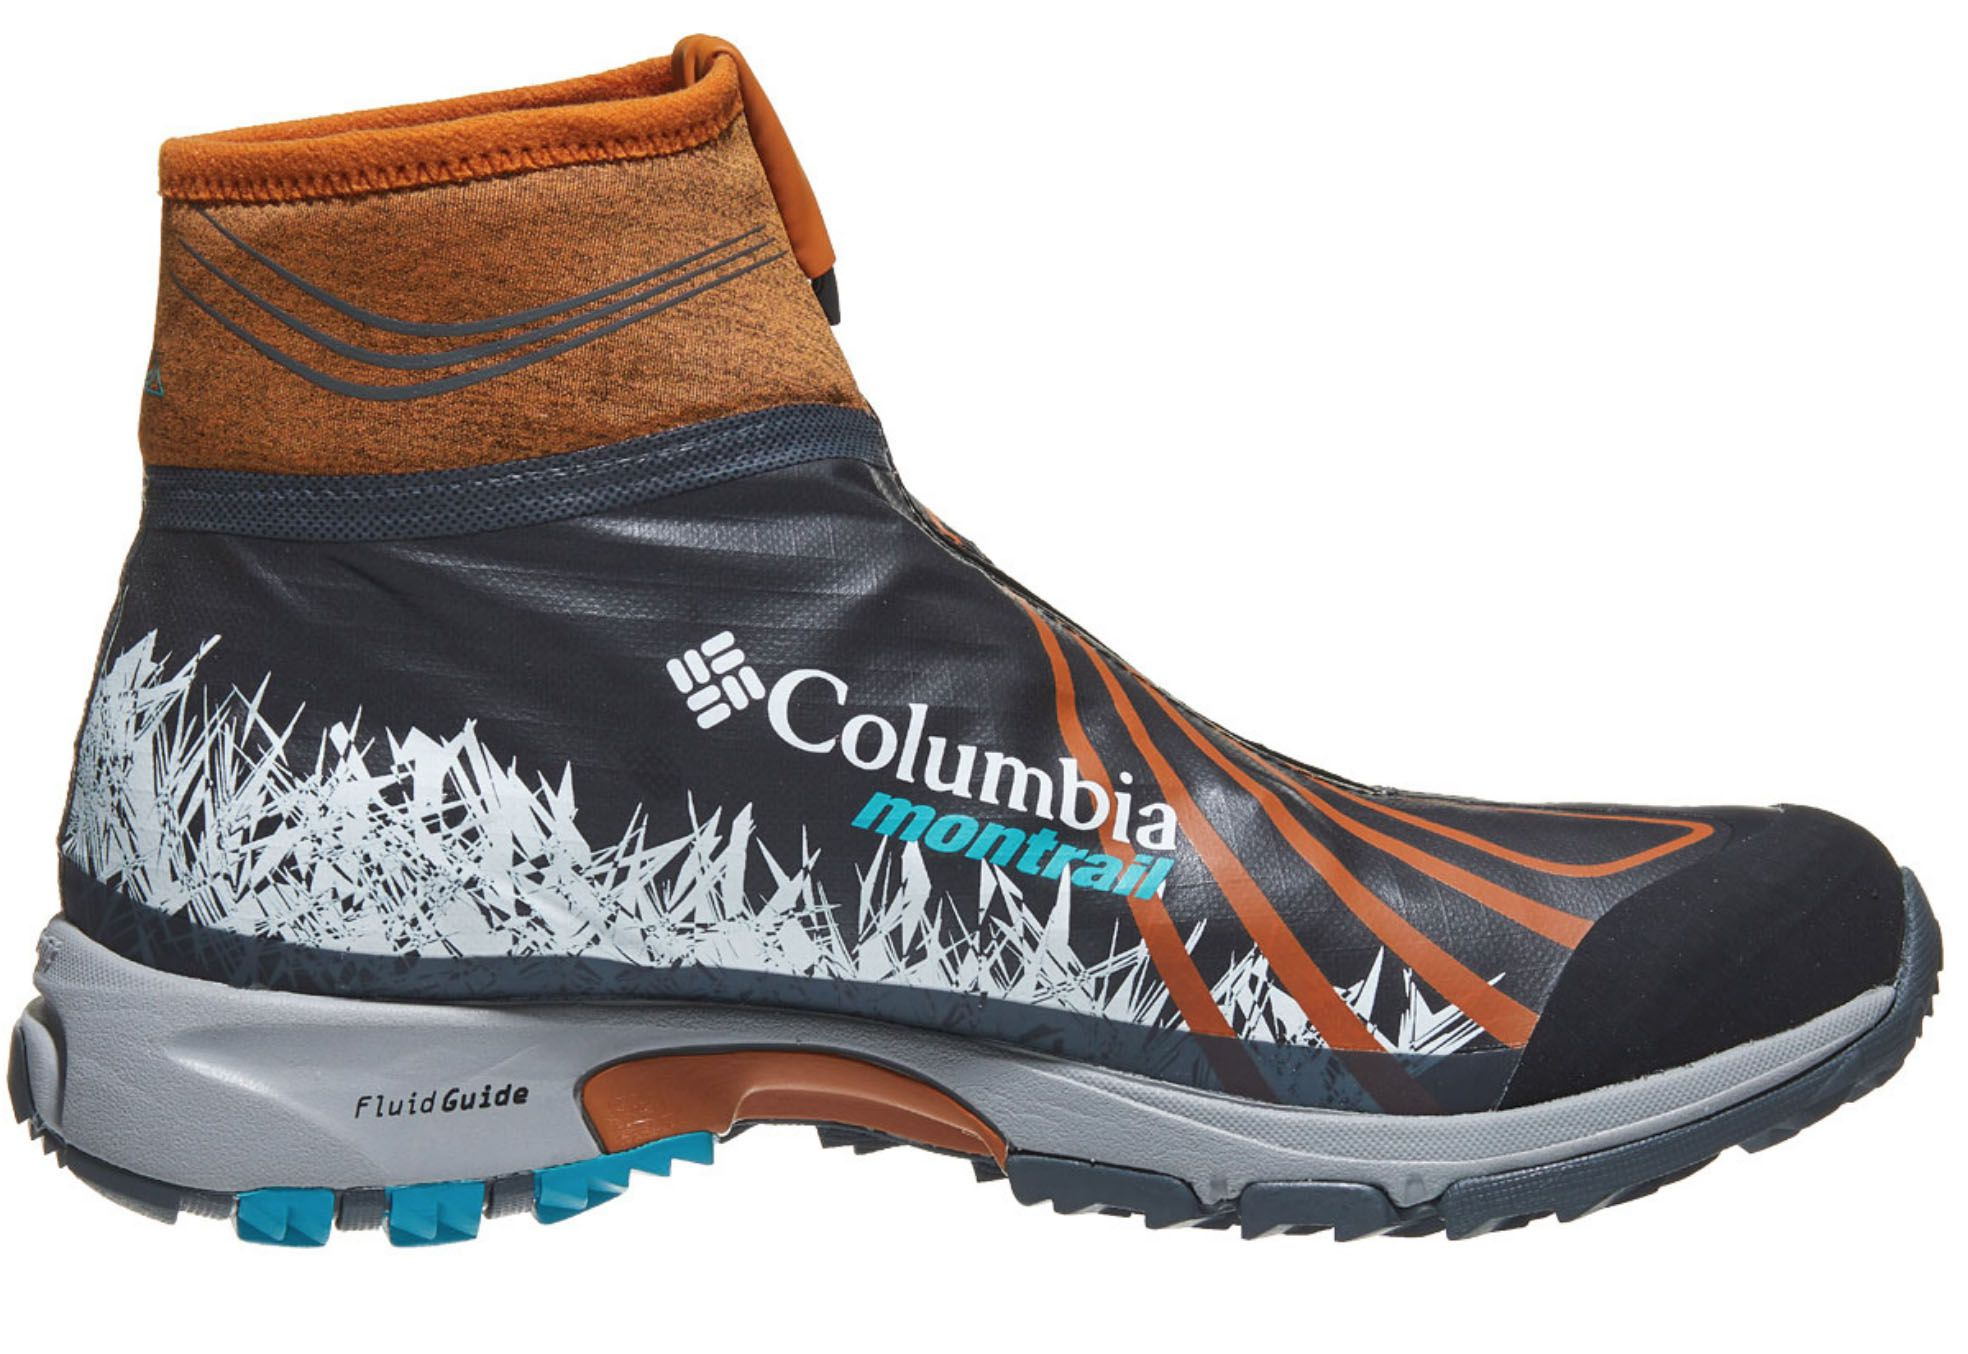 Best winter running shoes | running in the snow and ice.